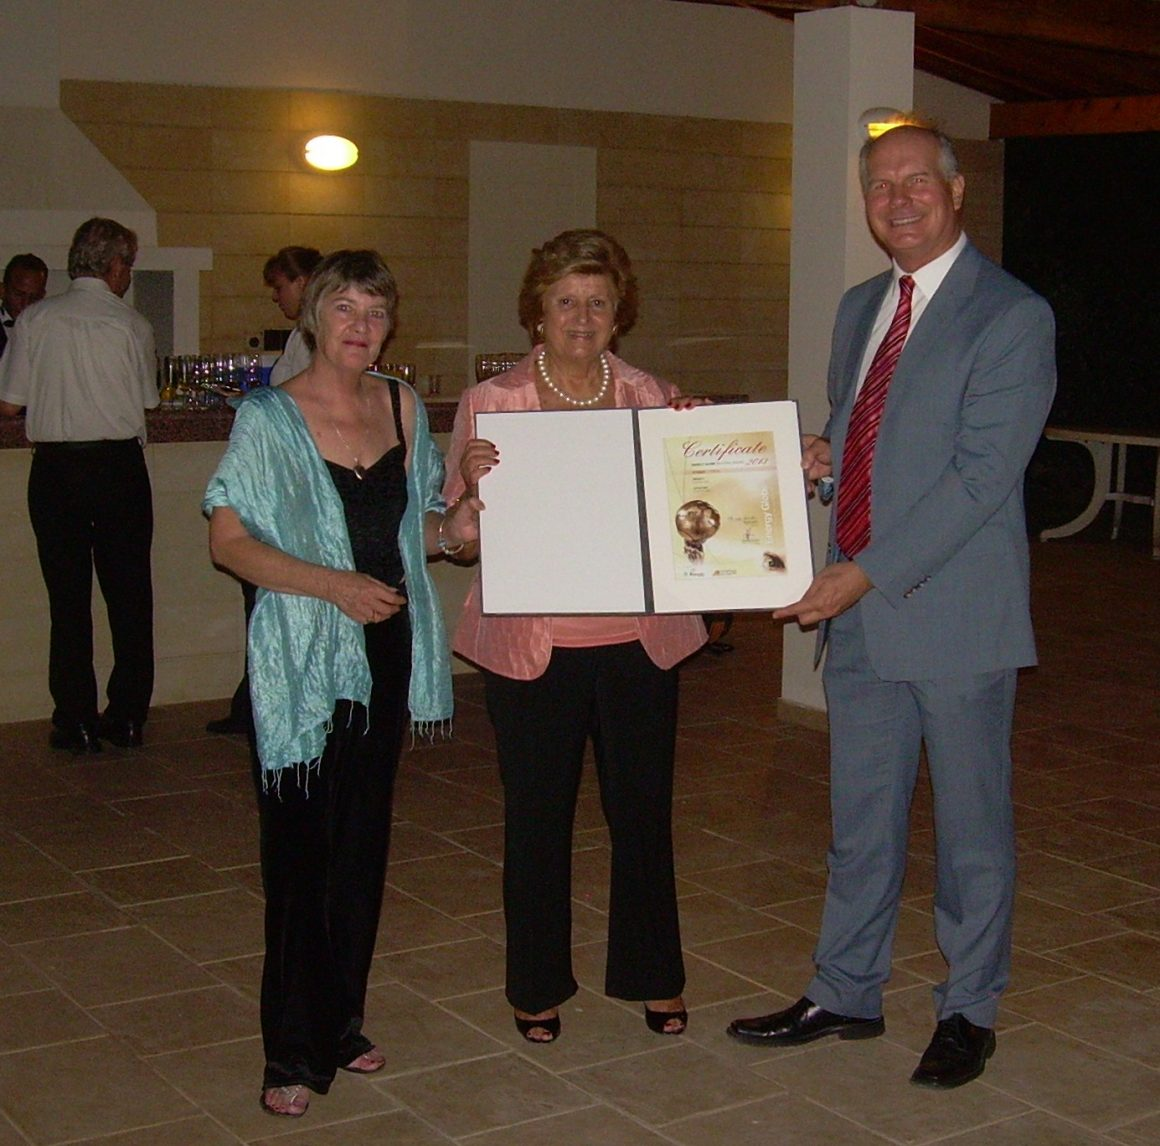 CANS FOR KIDS WINS ENERGY GLOBE FOR CYPRUS